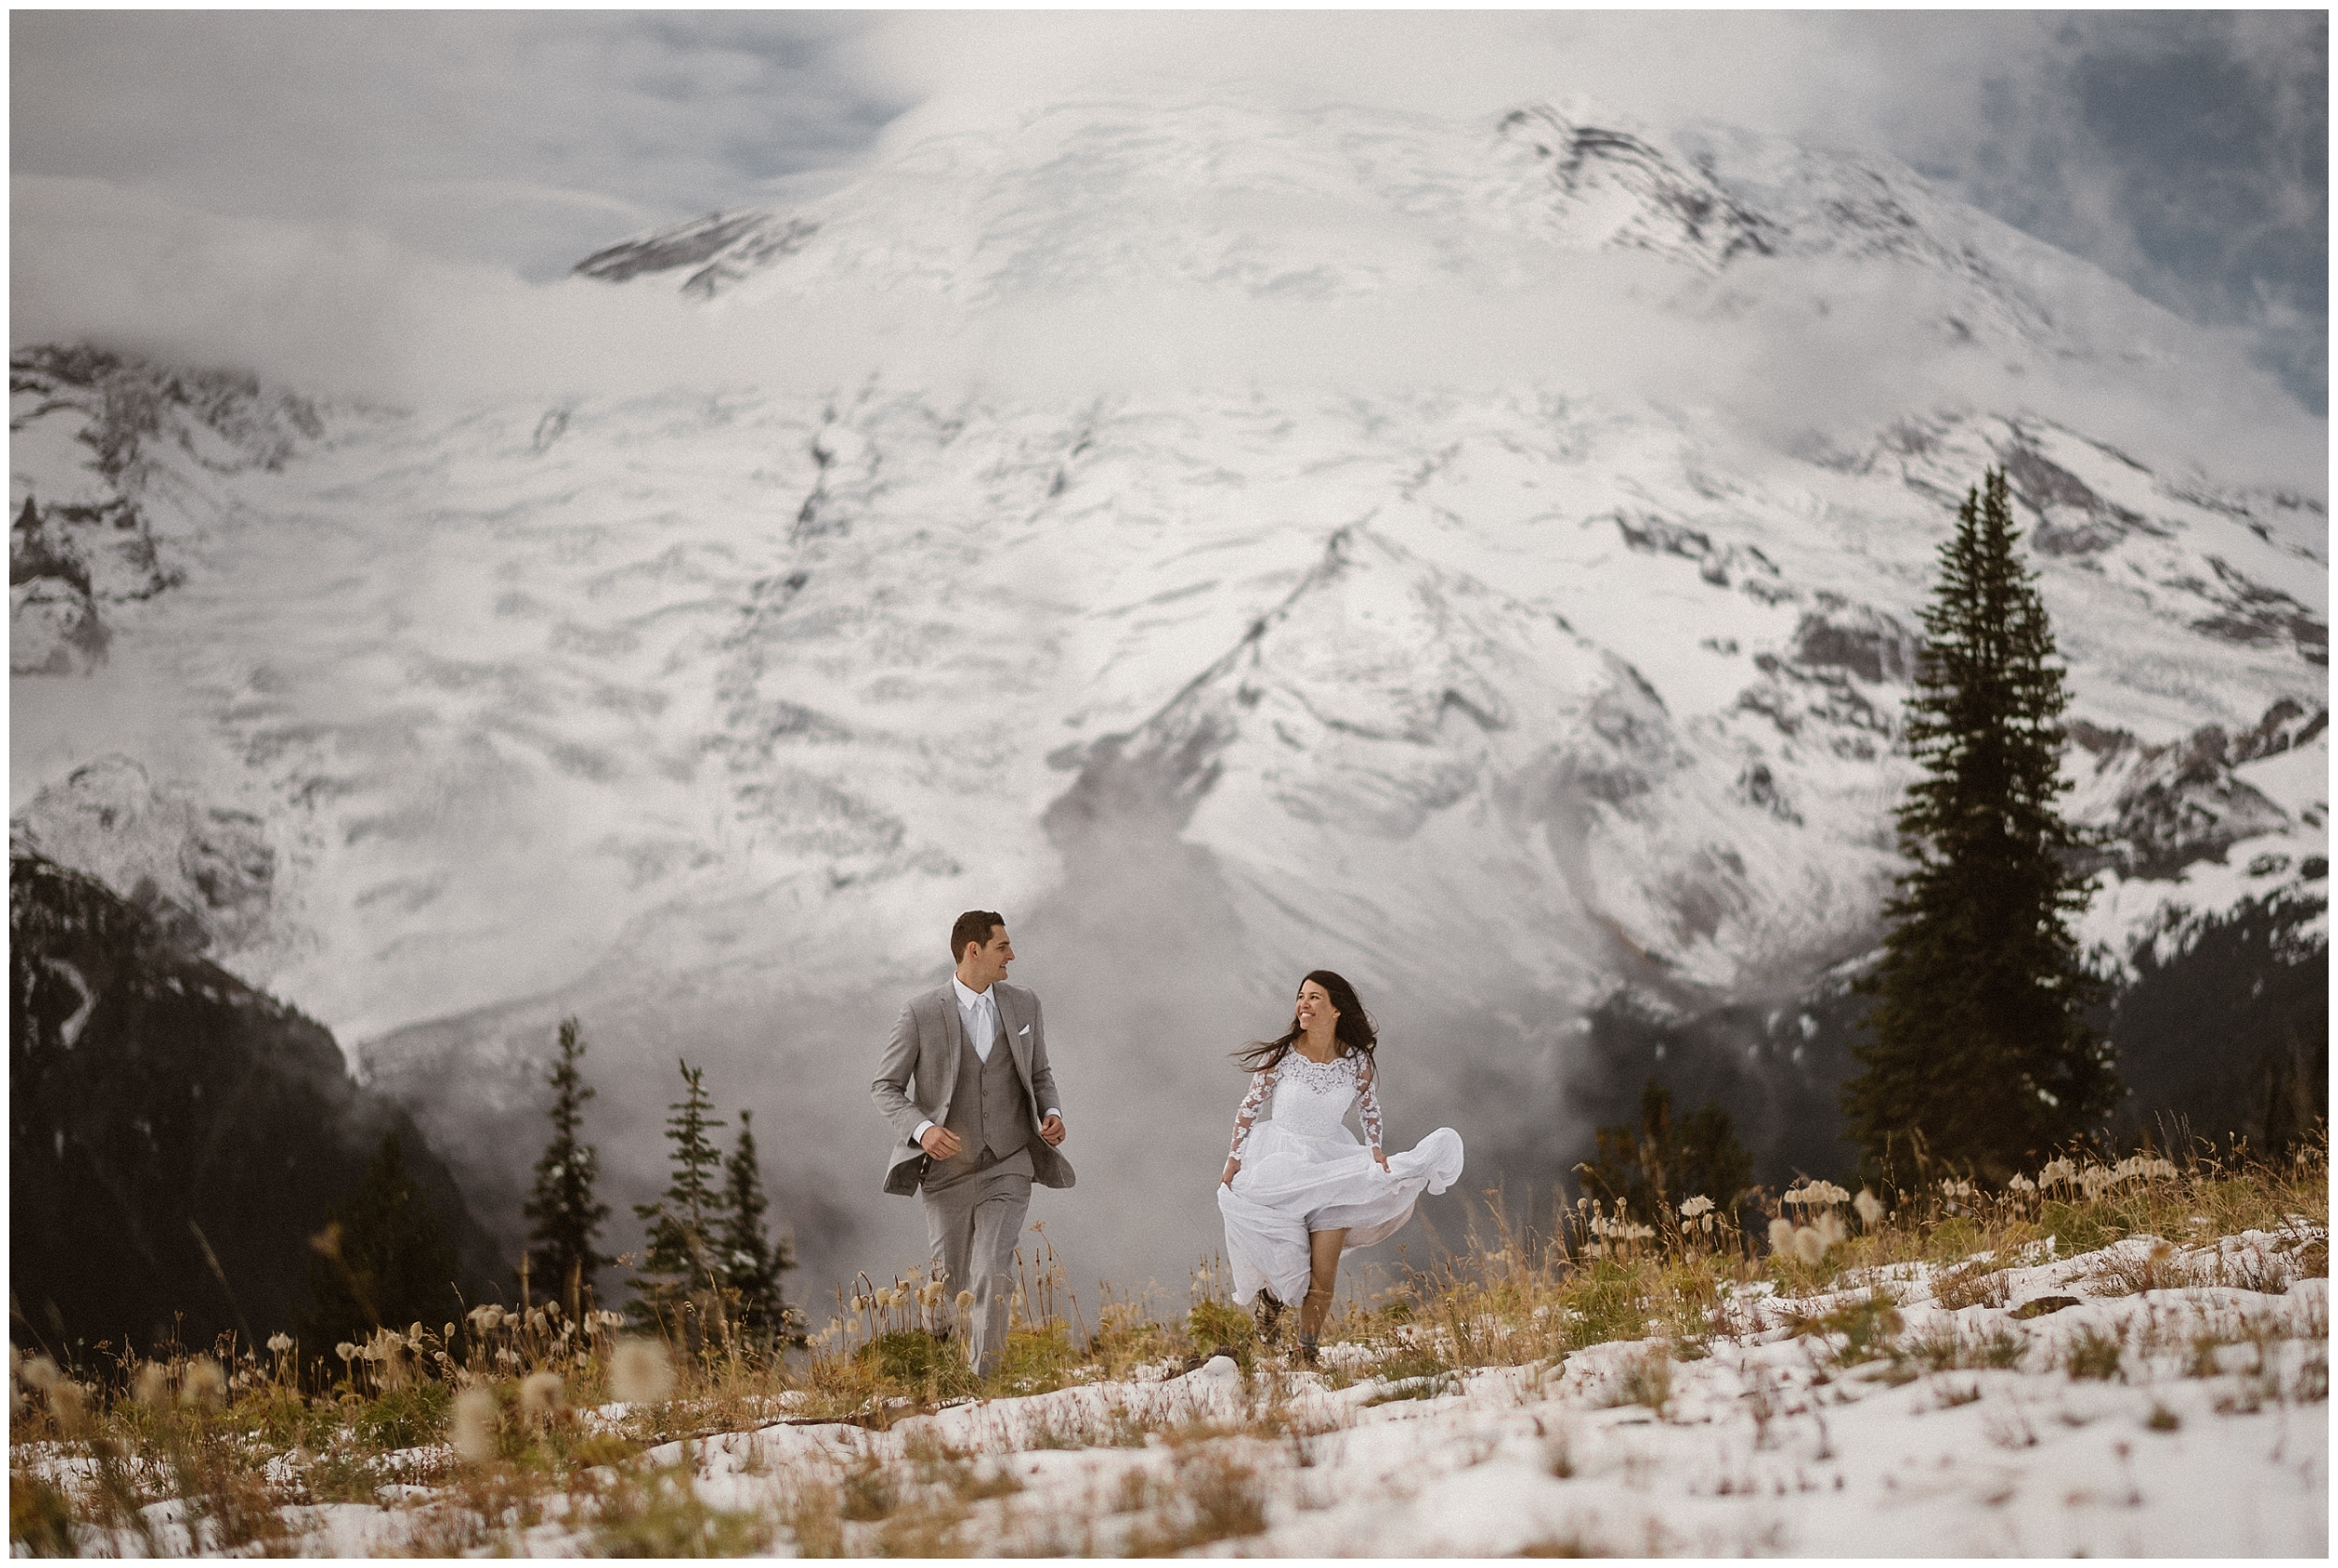 A bride and groom run through a snowy, alpine meadow in their wedding attire. The bride, gathering up her white wedding dress in her hands to reveal her hiking boots underneath, looks at the groom, running alongside her in a light grey suit. Behind them, an enormous, snowy mountain is looming.